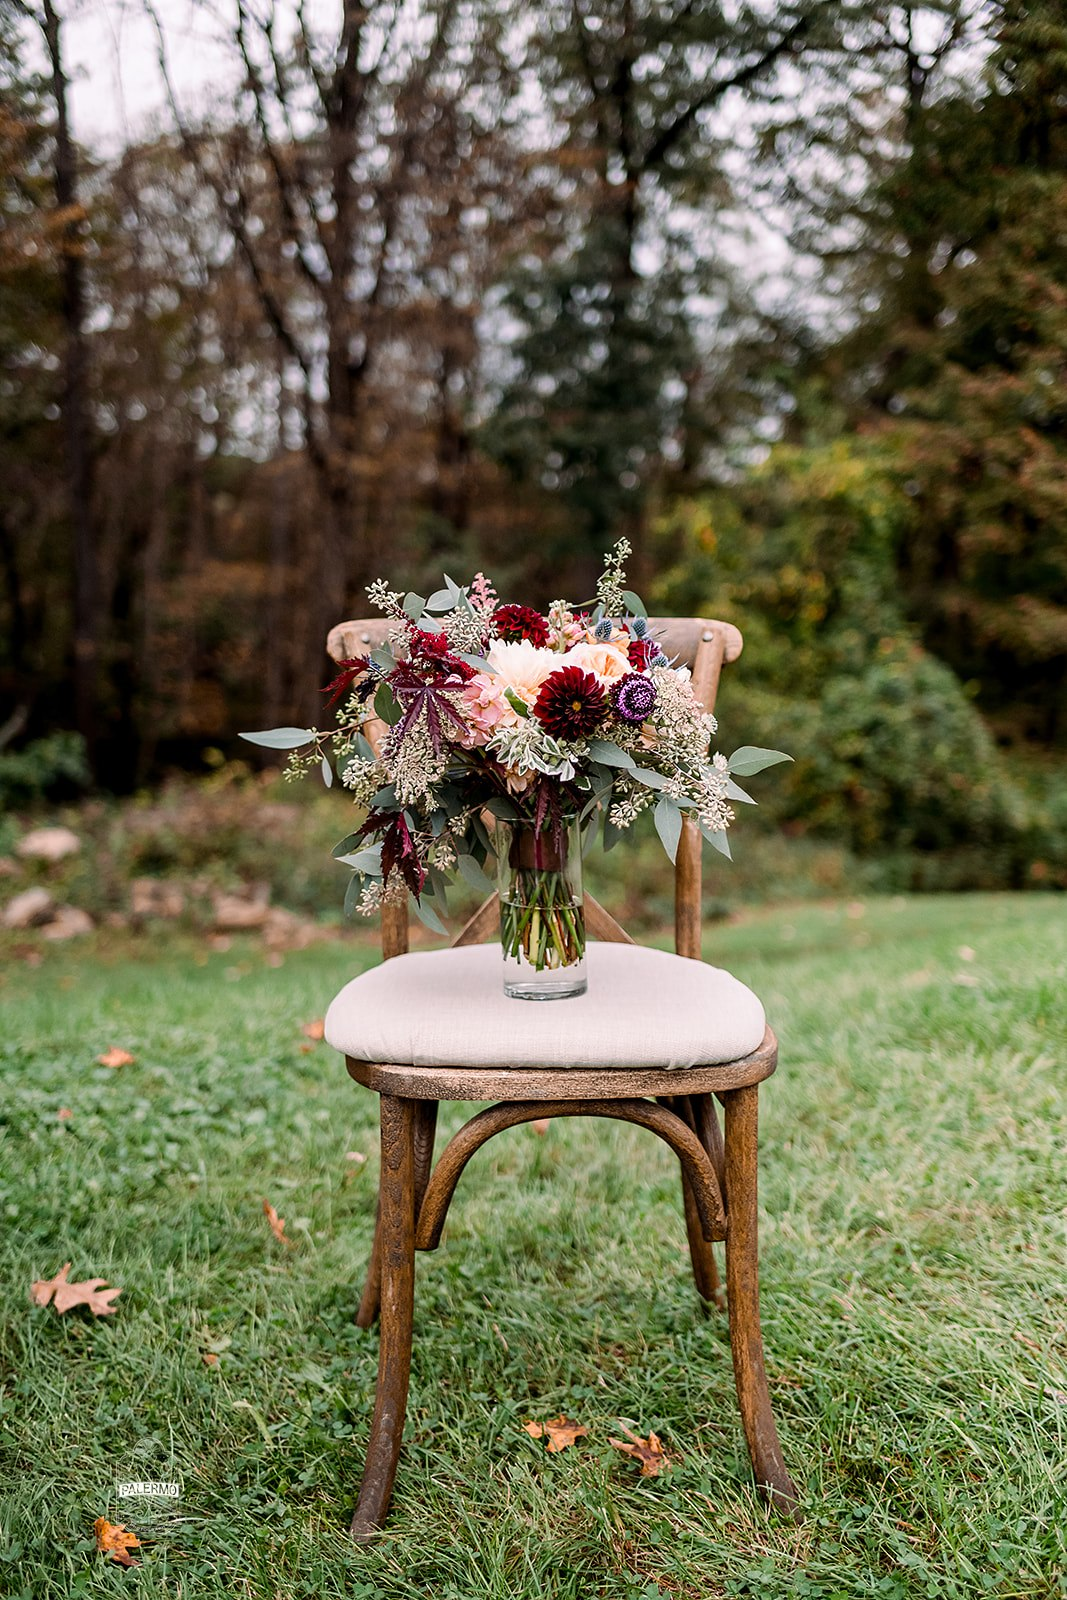 Burgundy wedding bouquet for fall barn wedding in Pittsburgh, PA planned by Exhale Events. Find more wedding inspiration at exhale-events.com!